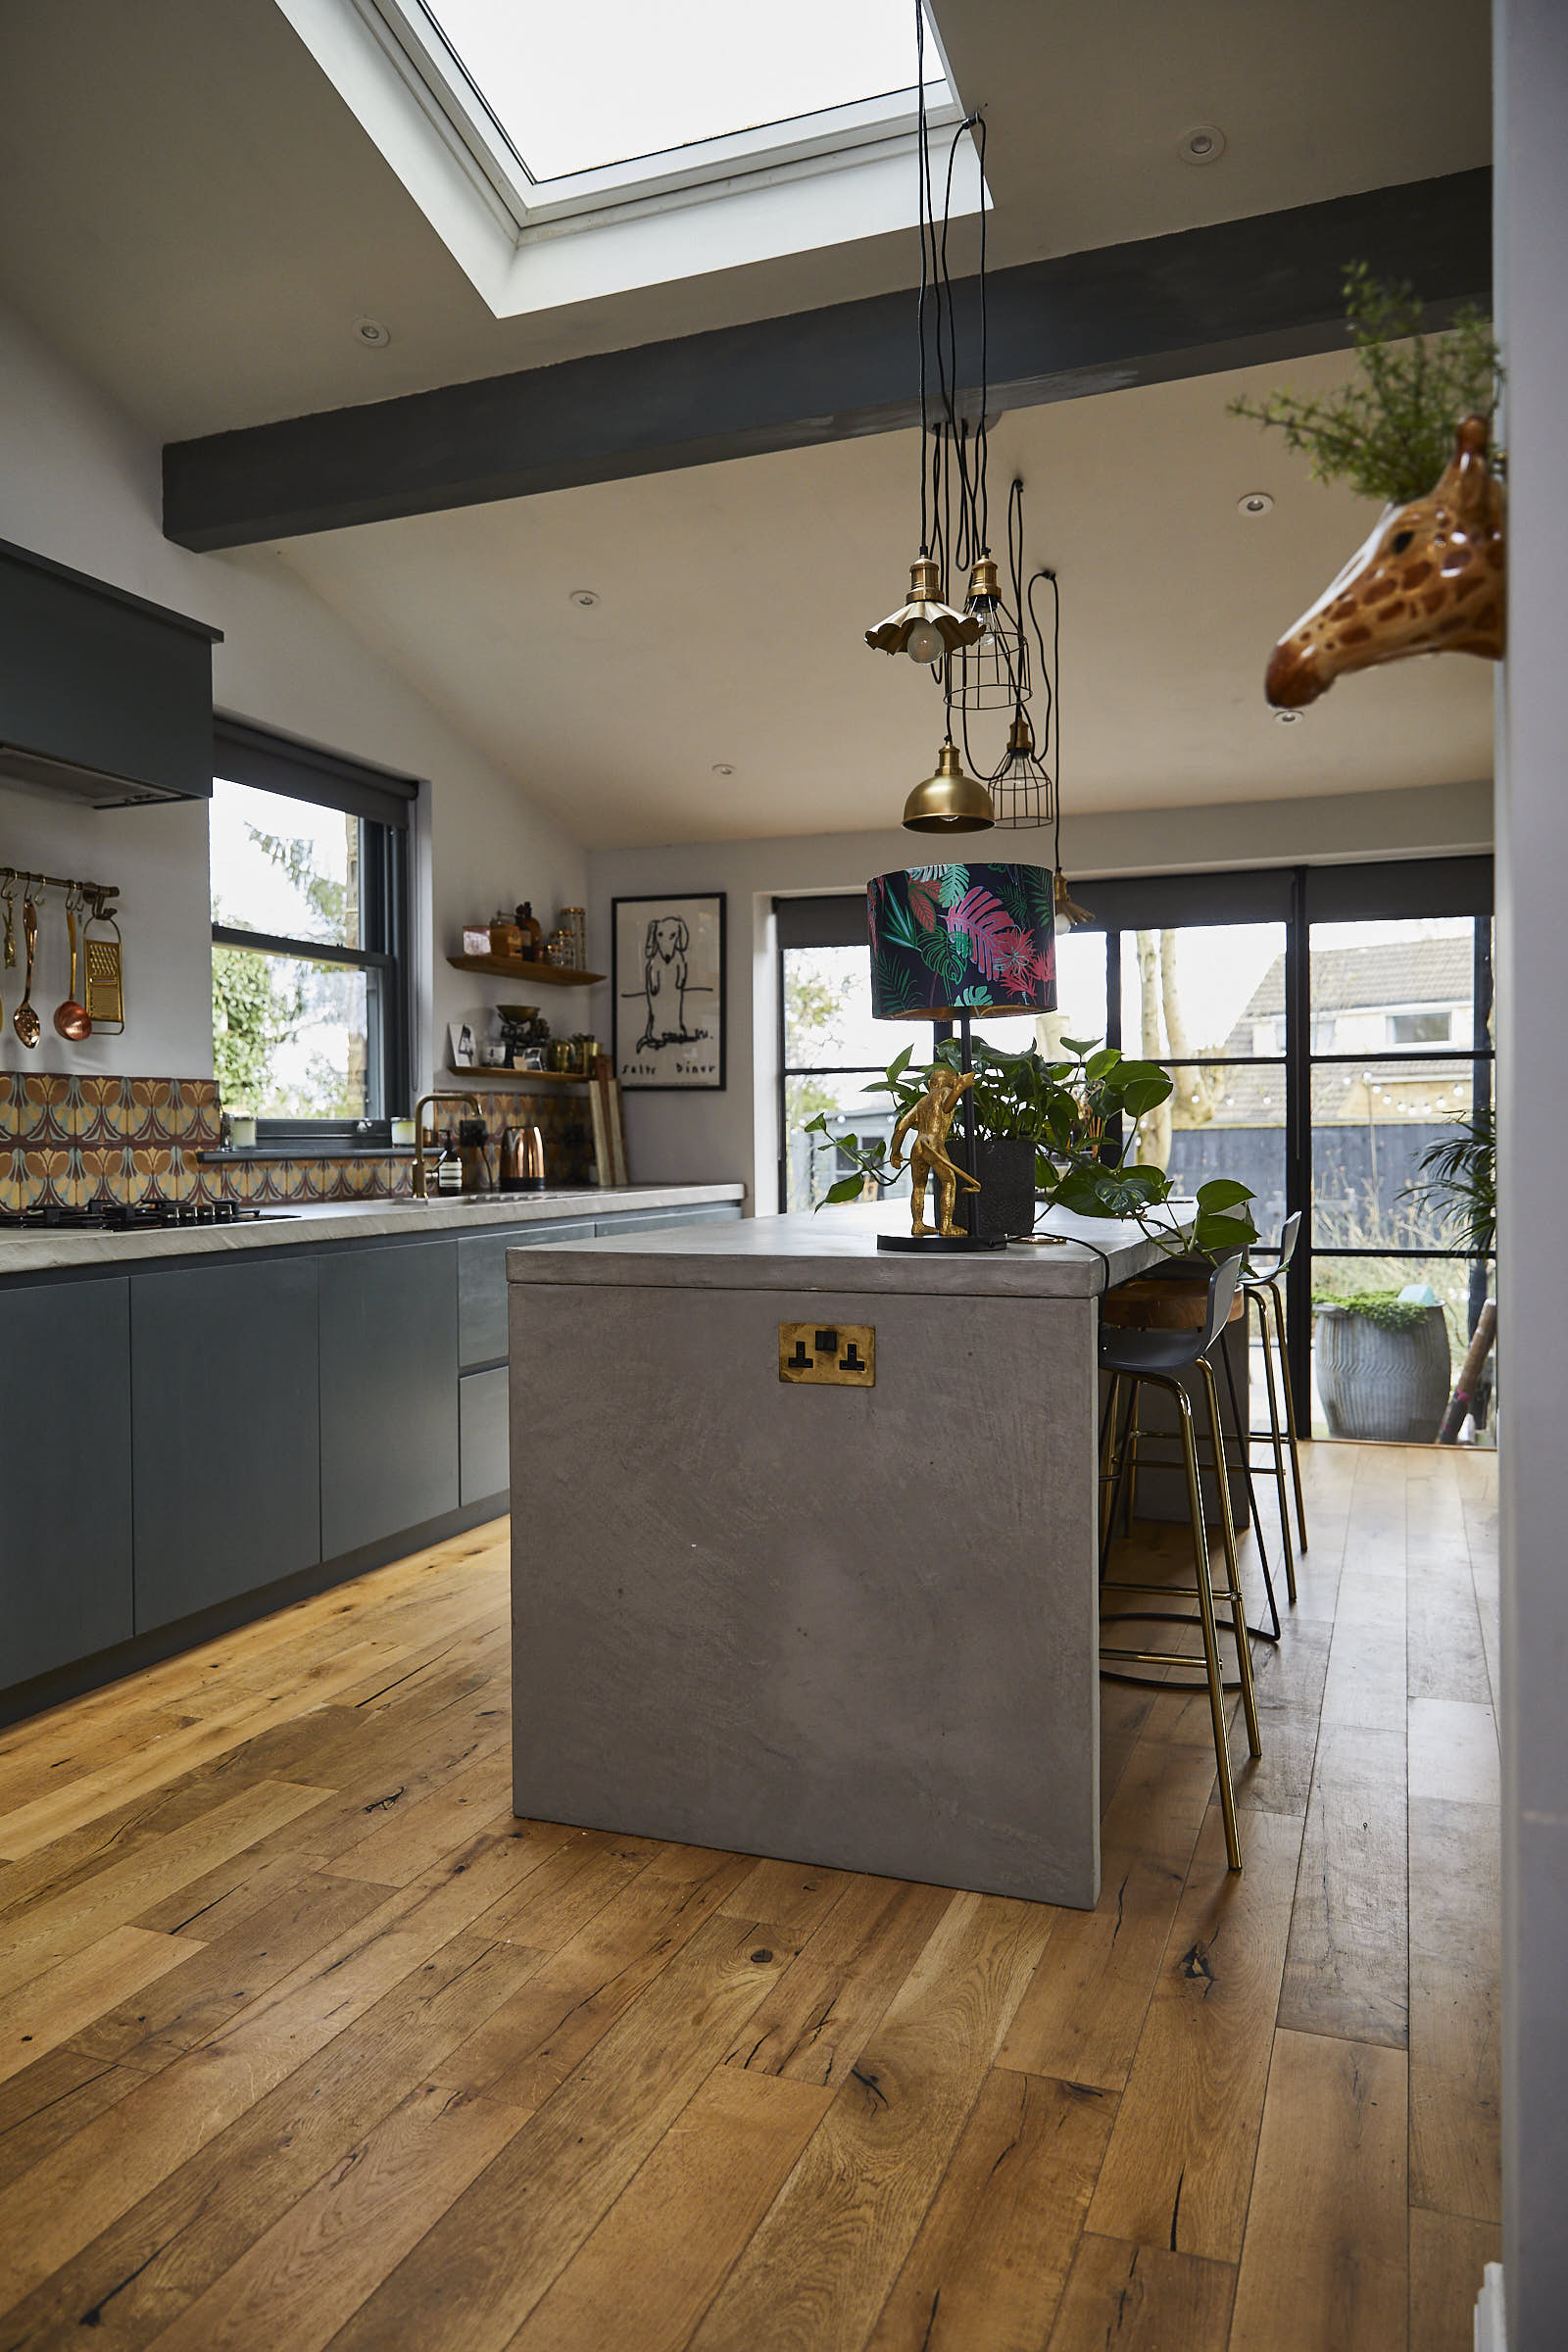 Solid concrete grey kitchen island with pendant lights above with geometric metal shades